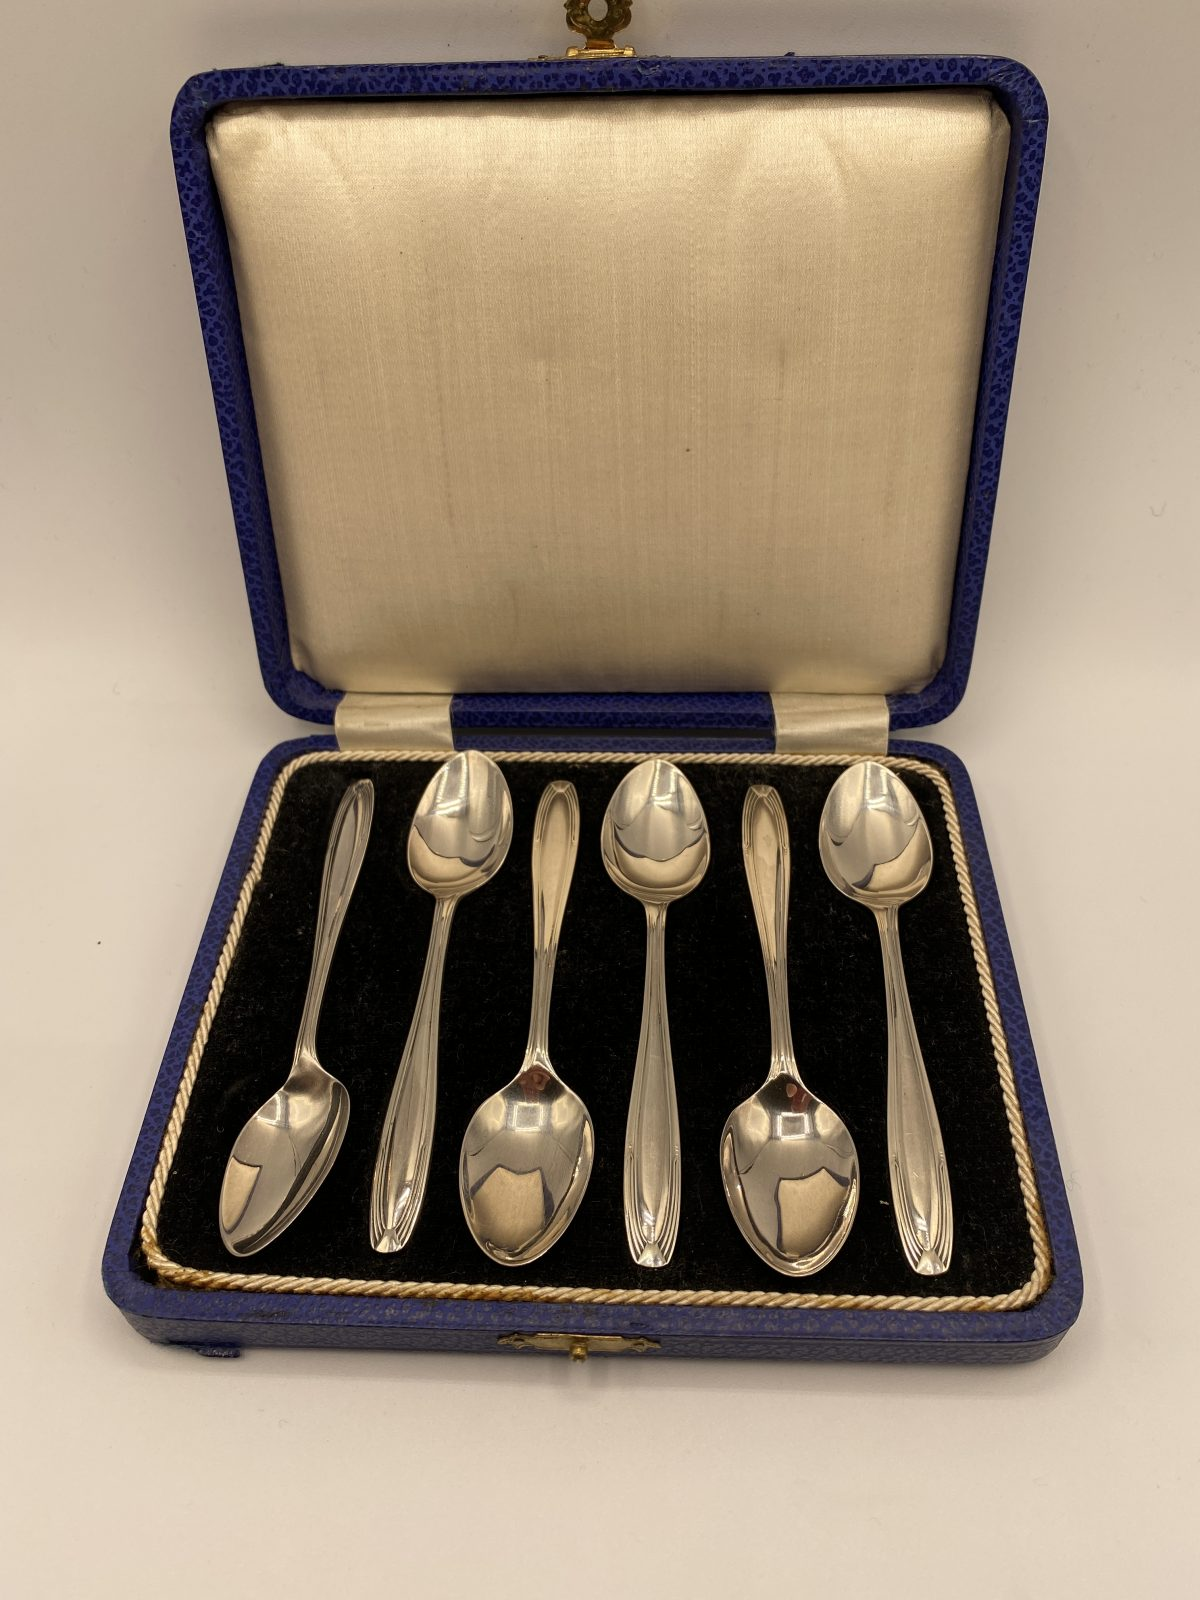 G3 - A Boxed Set of 6 Art Deco Silver Spoons, Birmingham 1930.  £76